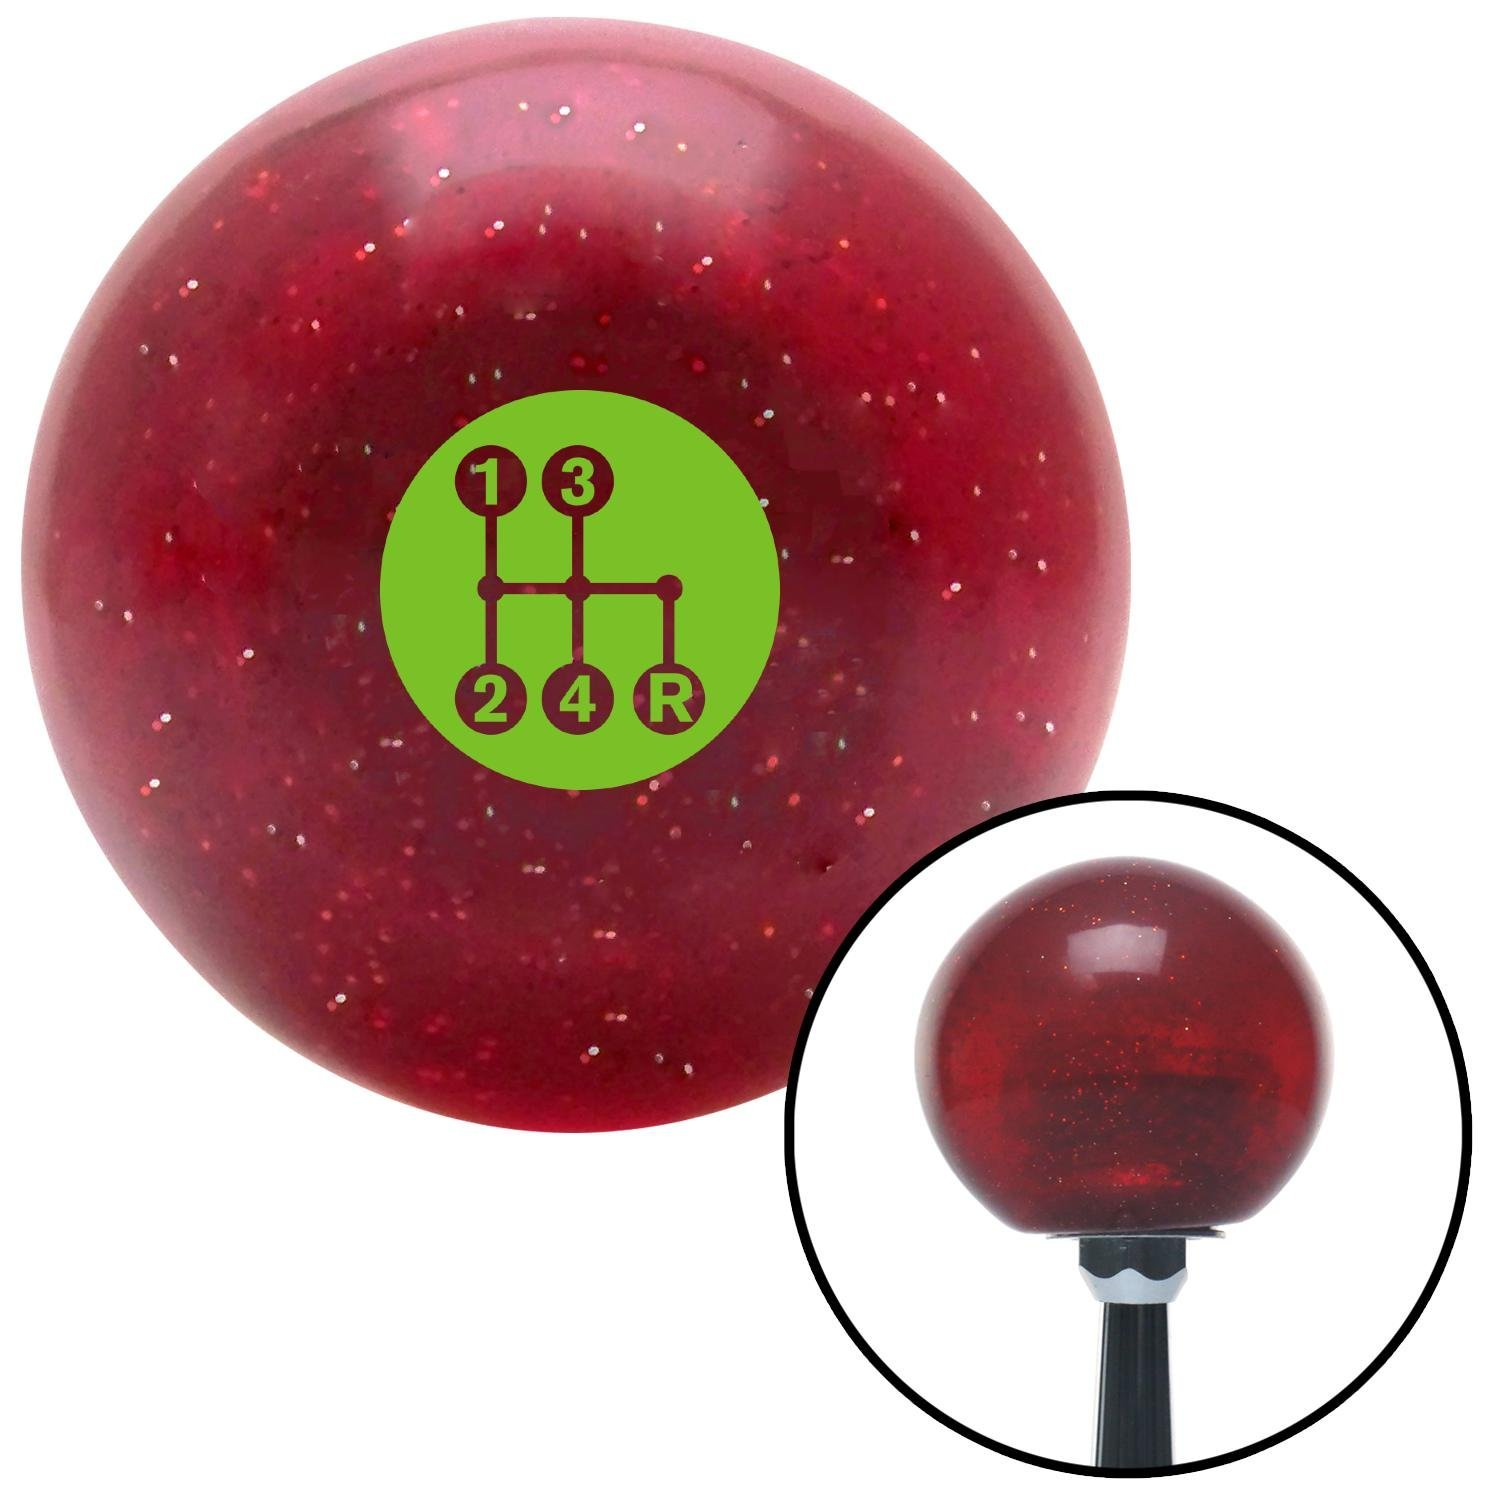 American Shifter 282780 Shift Knob Green 4 Speed Shift Pattern - Dots 6 Red Metal Flake with M16 x 1.5 Insert